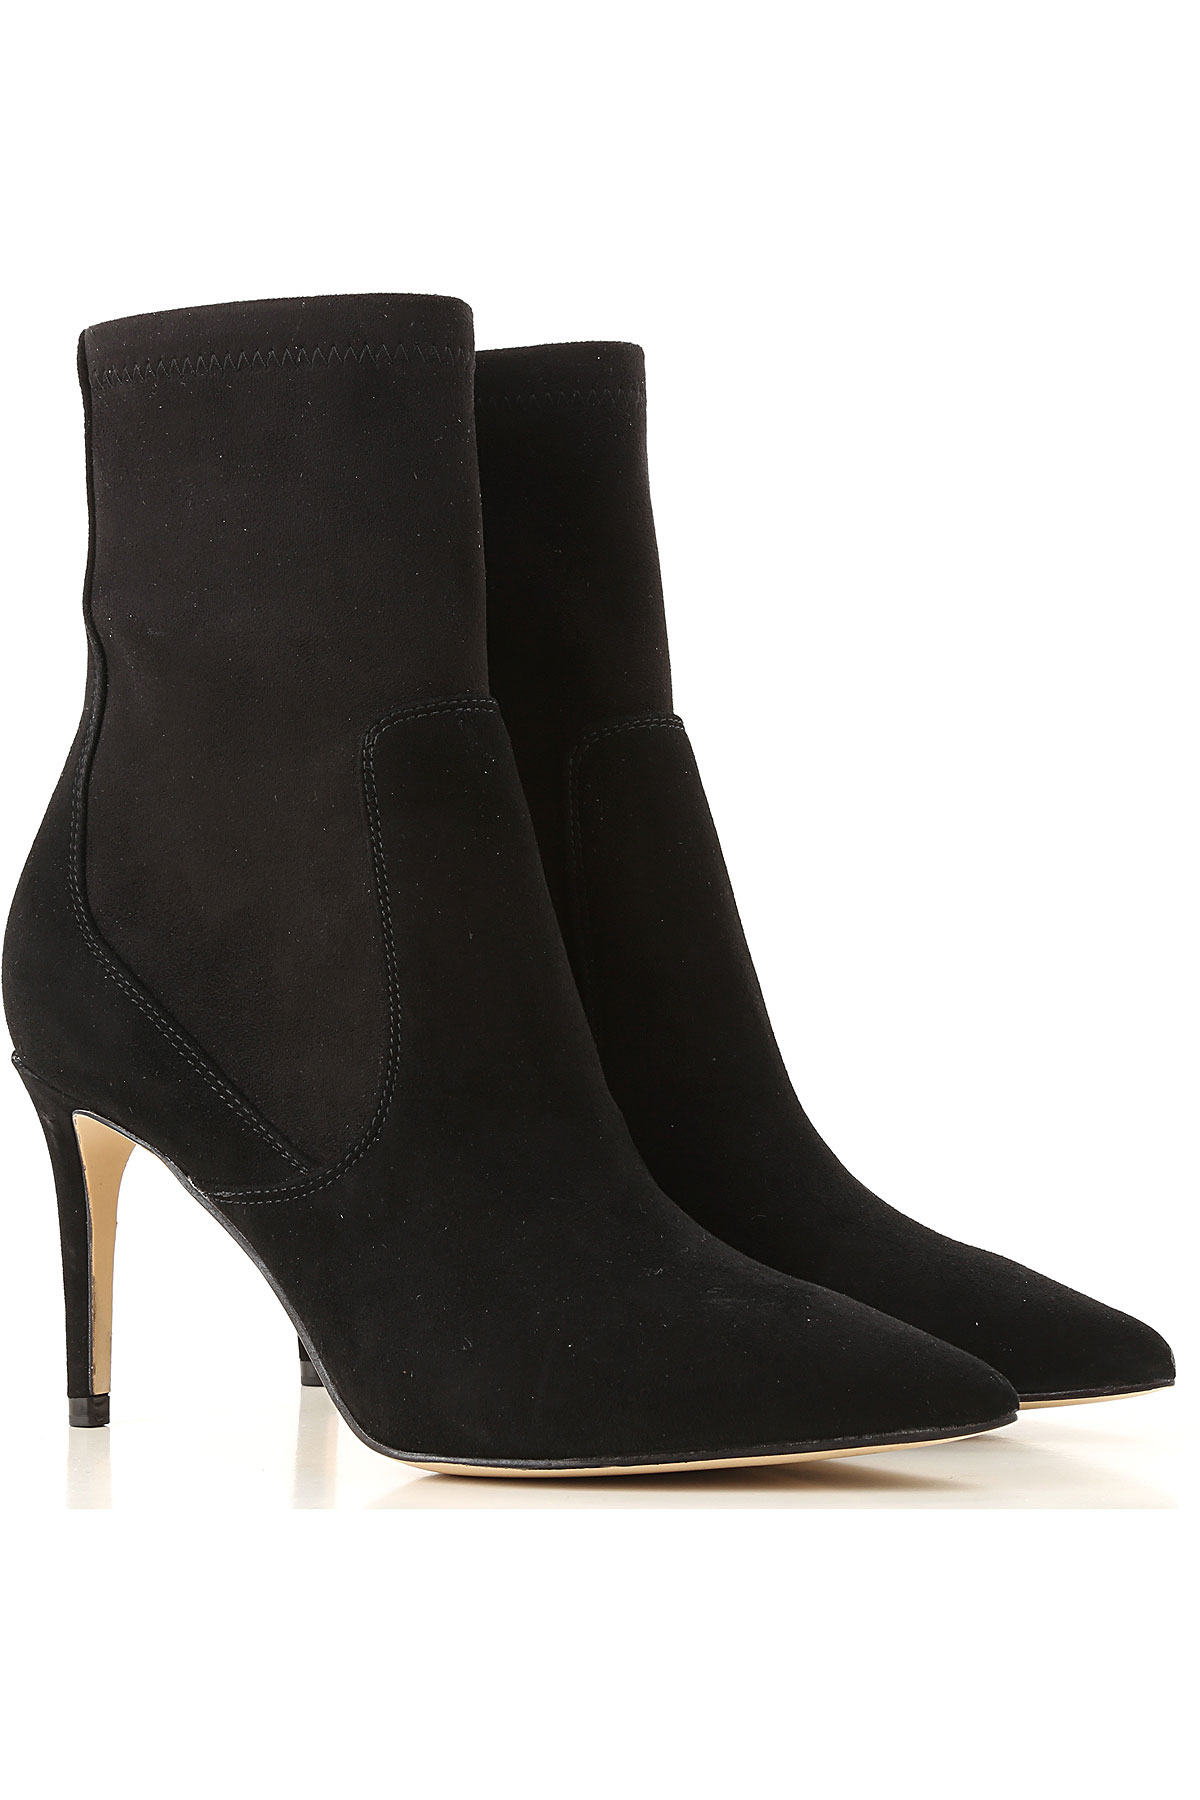 Image of Guess Boots for Women, Booties, Black, Suede leather, 2017, 10 5 6 7 8 9